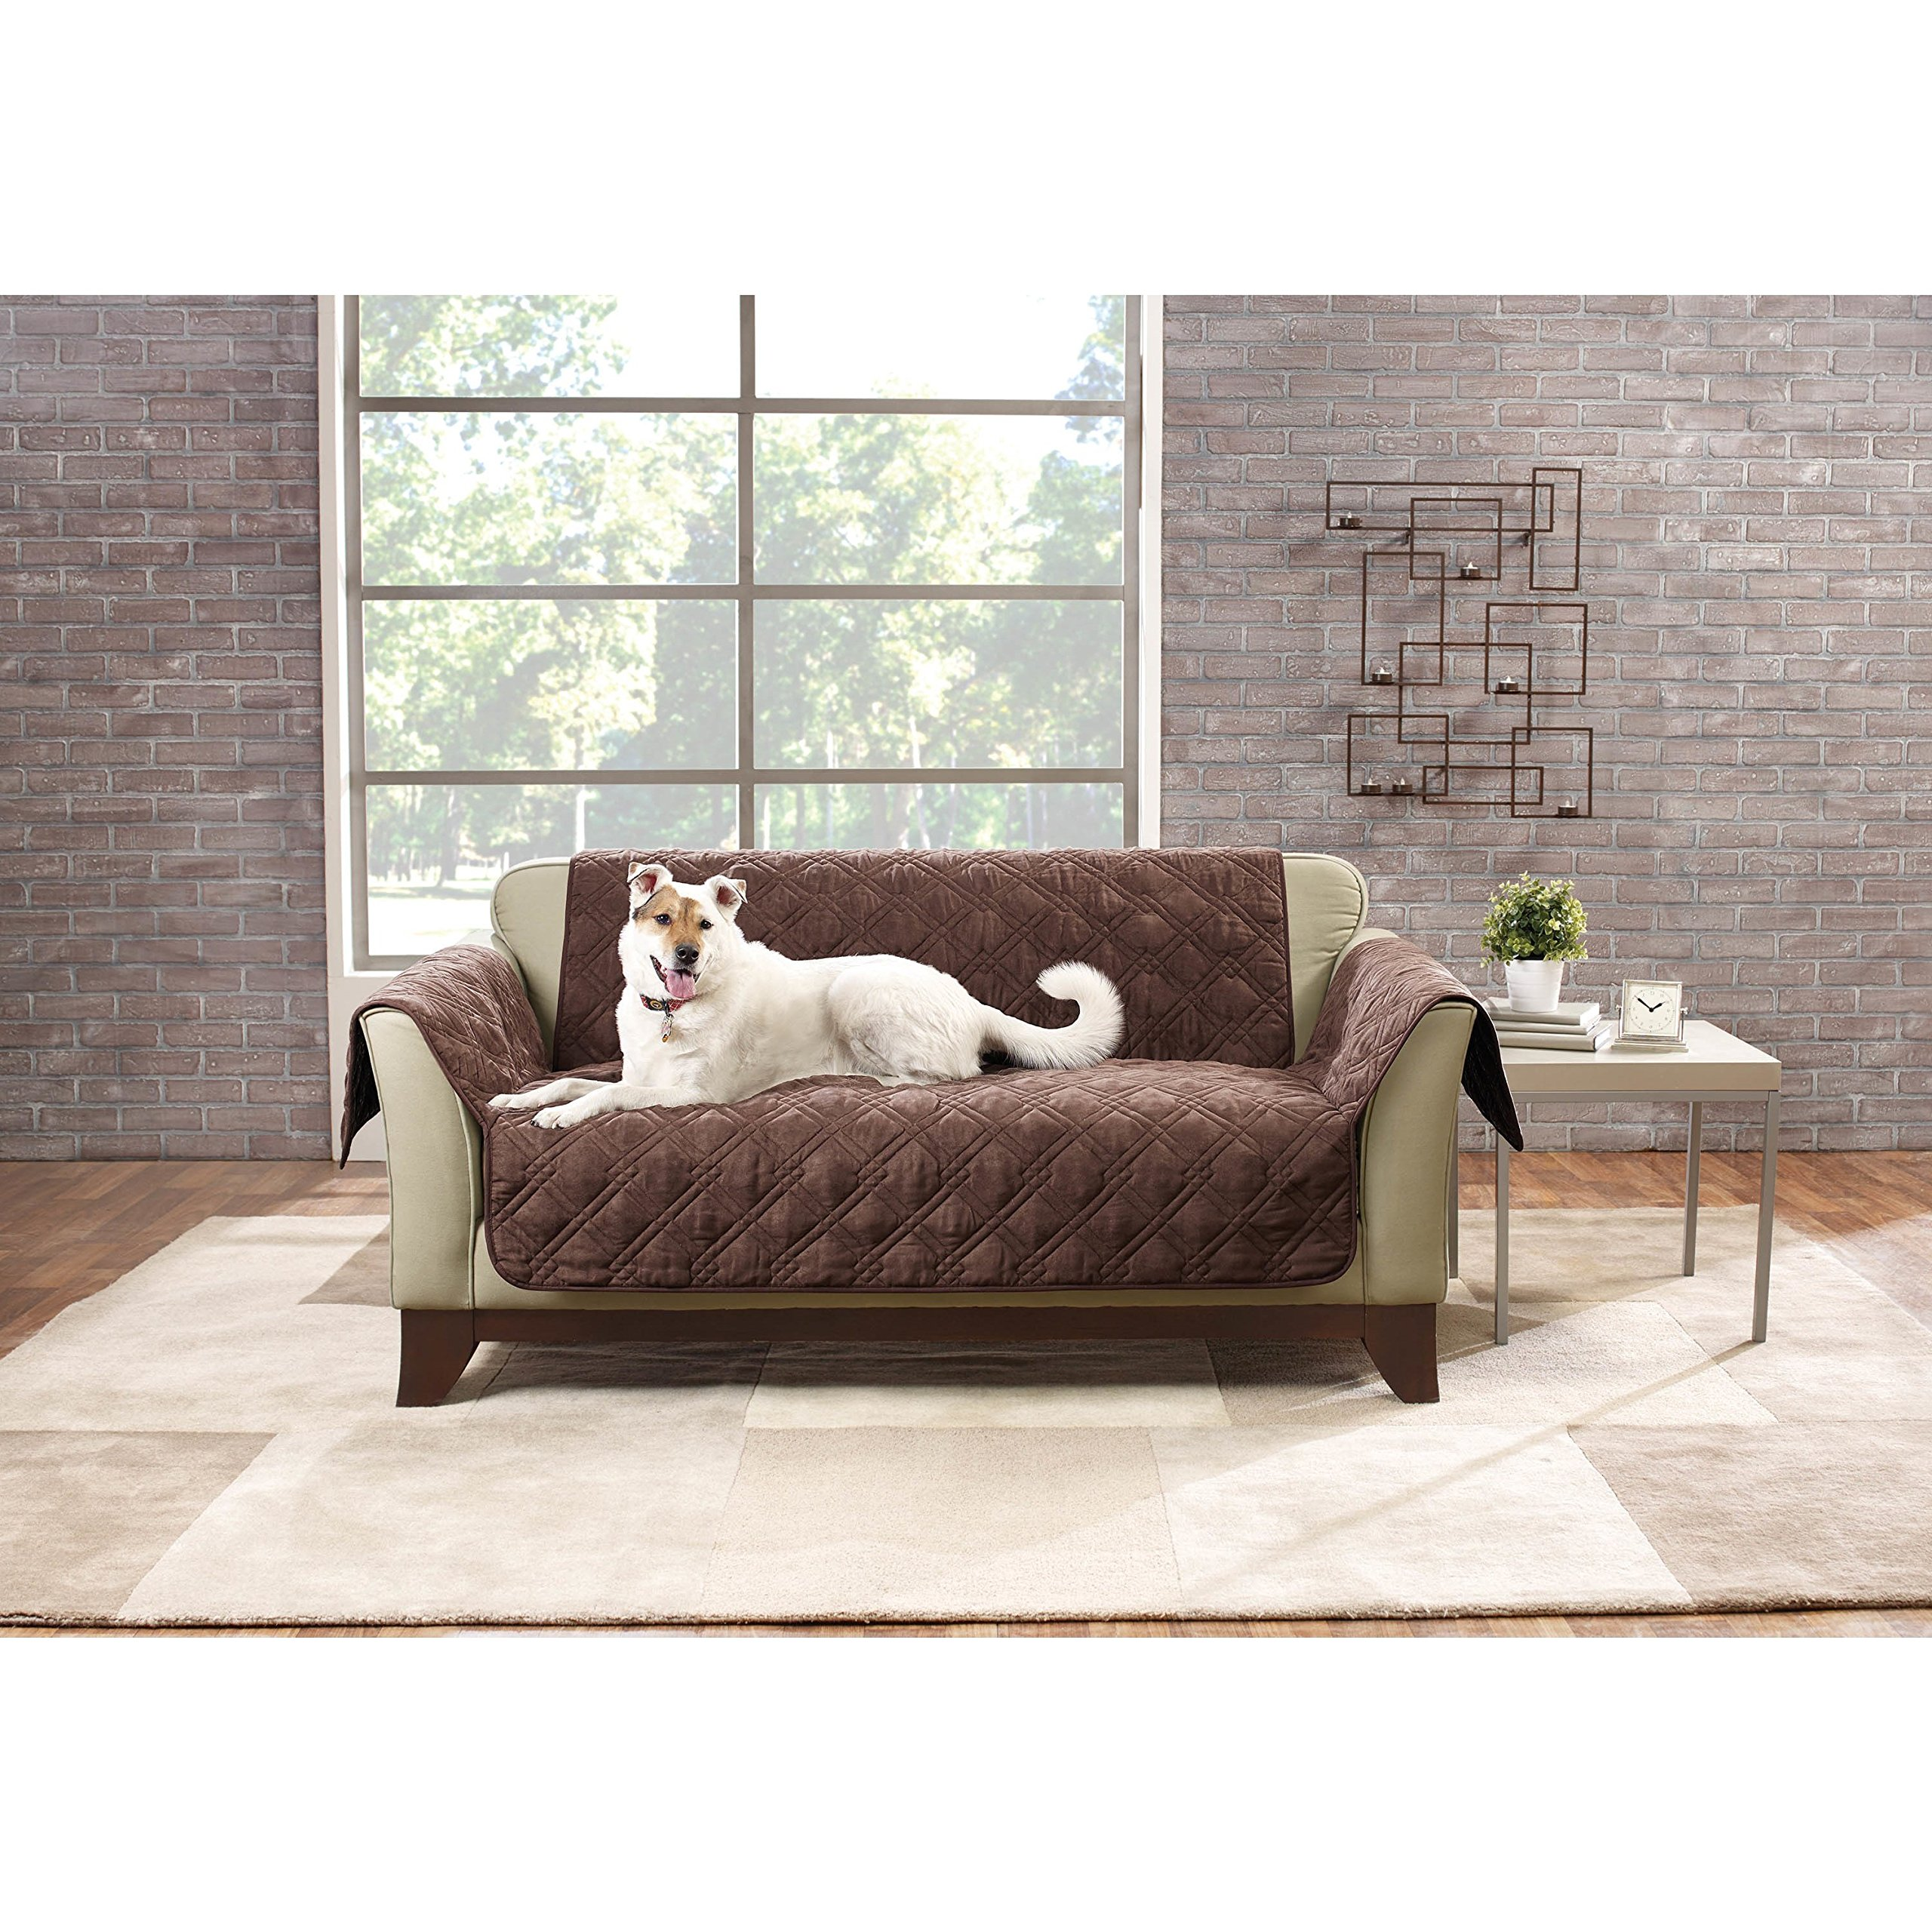 52 X 35 Inch Chocolate Solid Color Non-slip Loveseat Cover, Dark Brown Furniture Protector From Pets Children Relaxed Fit T-cushion Textured Elegant, Polyester